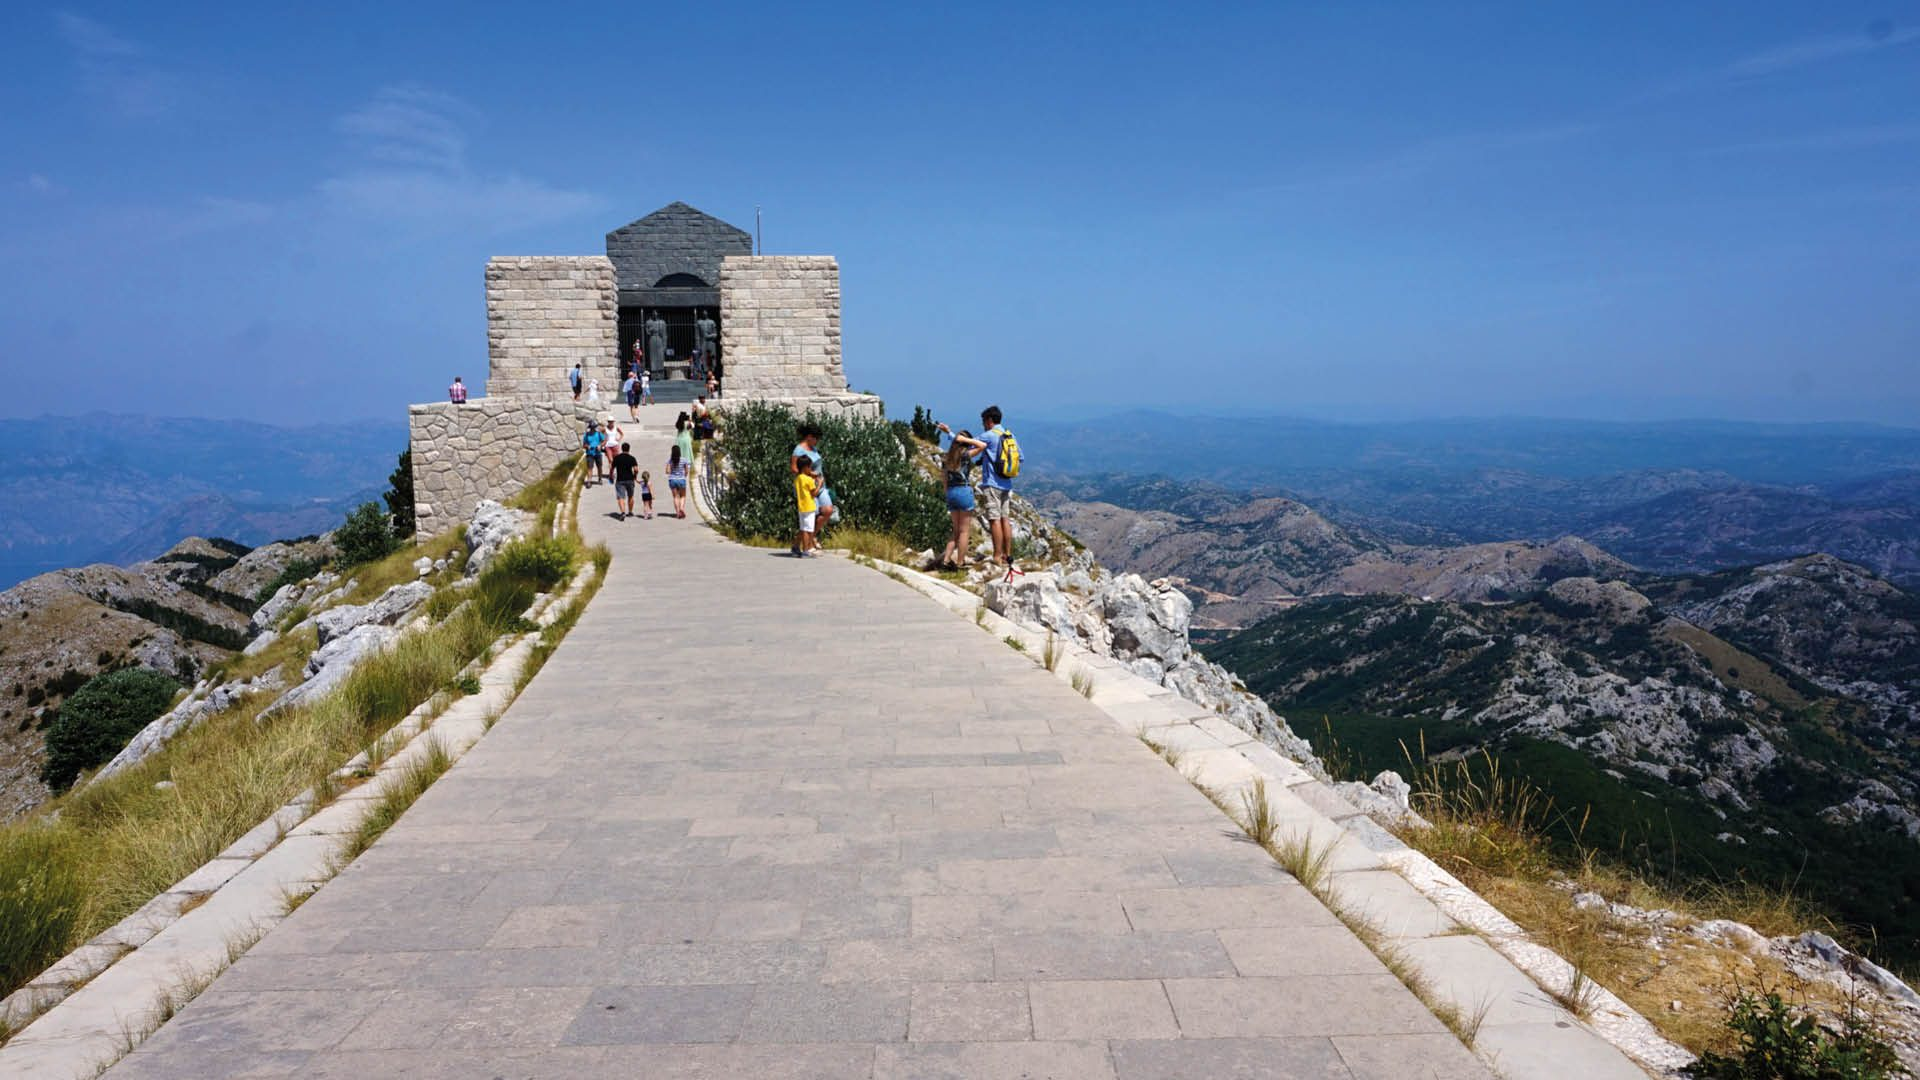 nationaal park lovcen mausoleum